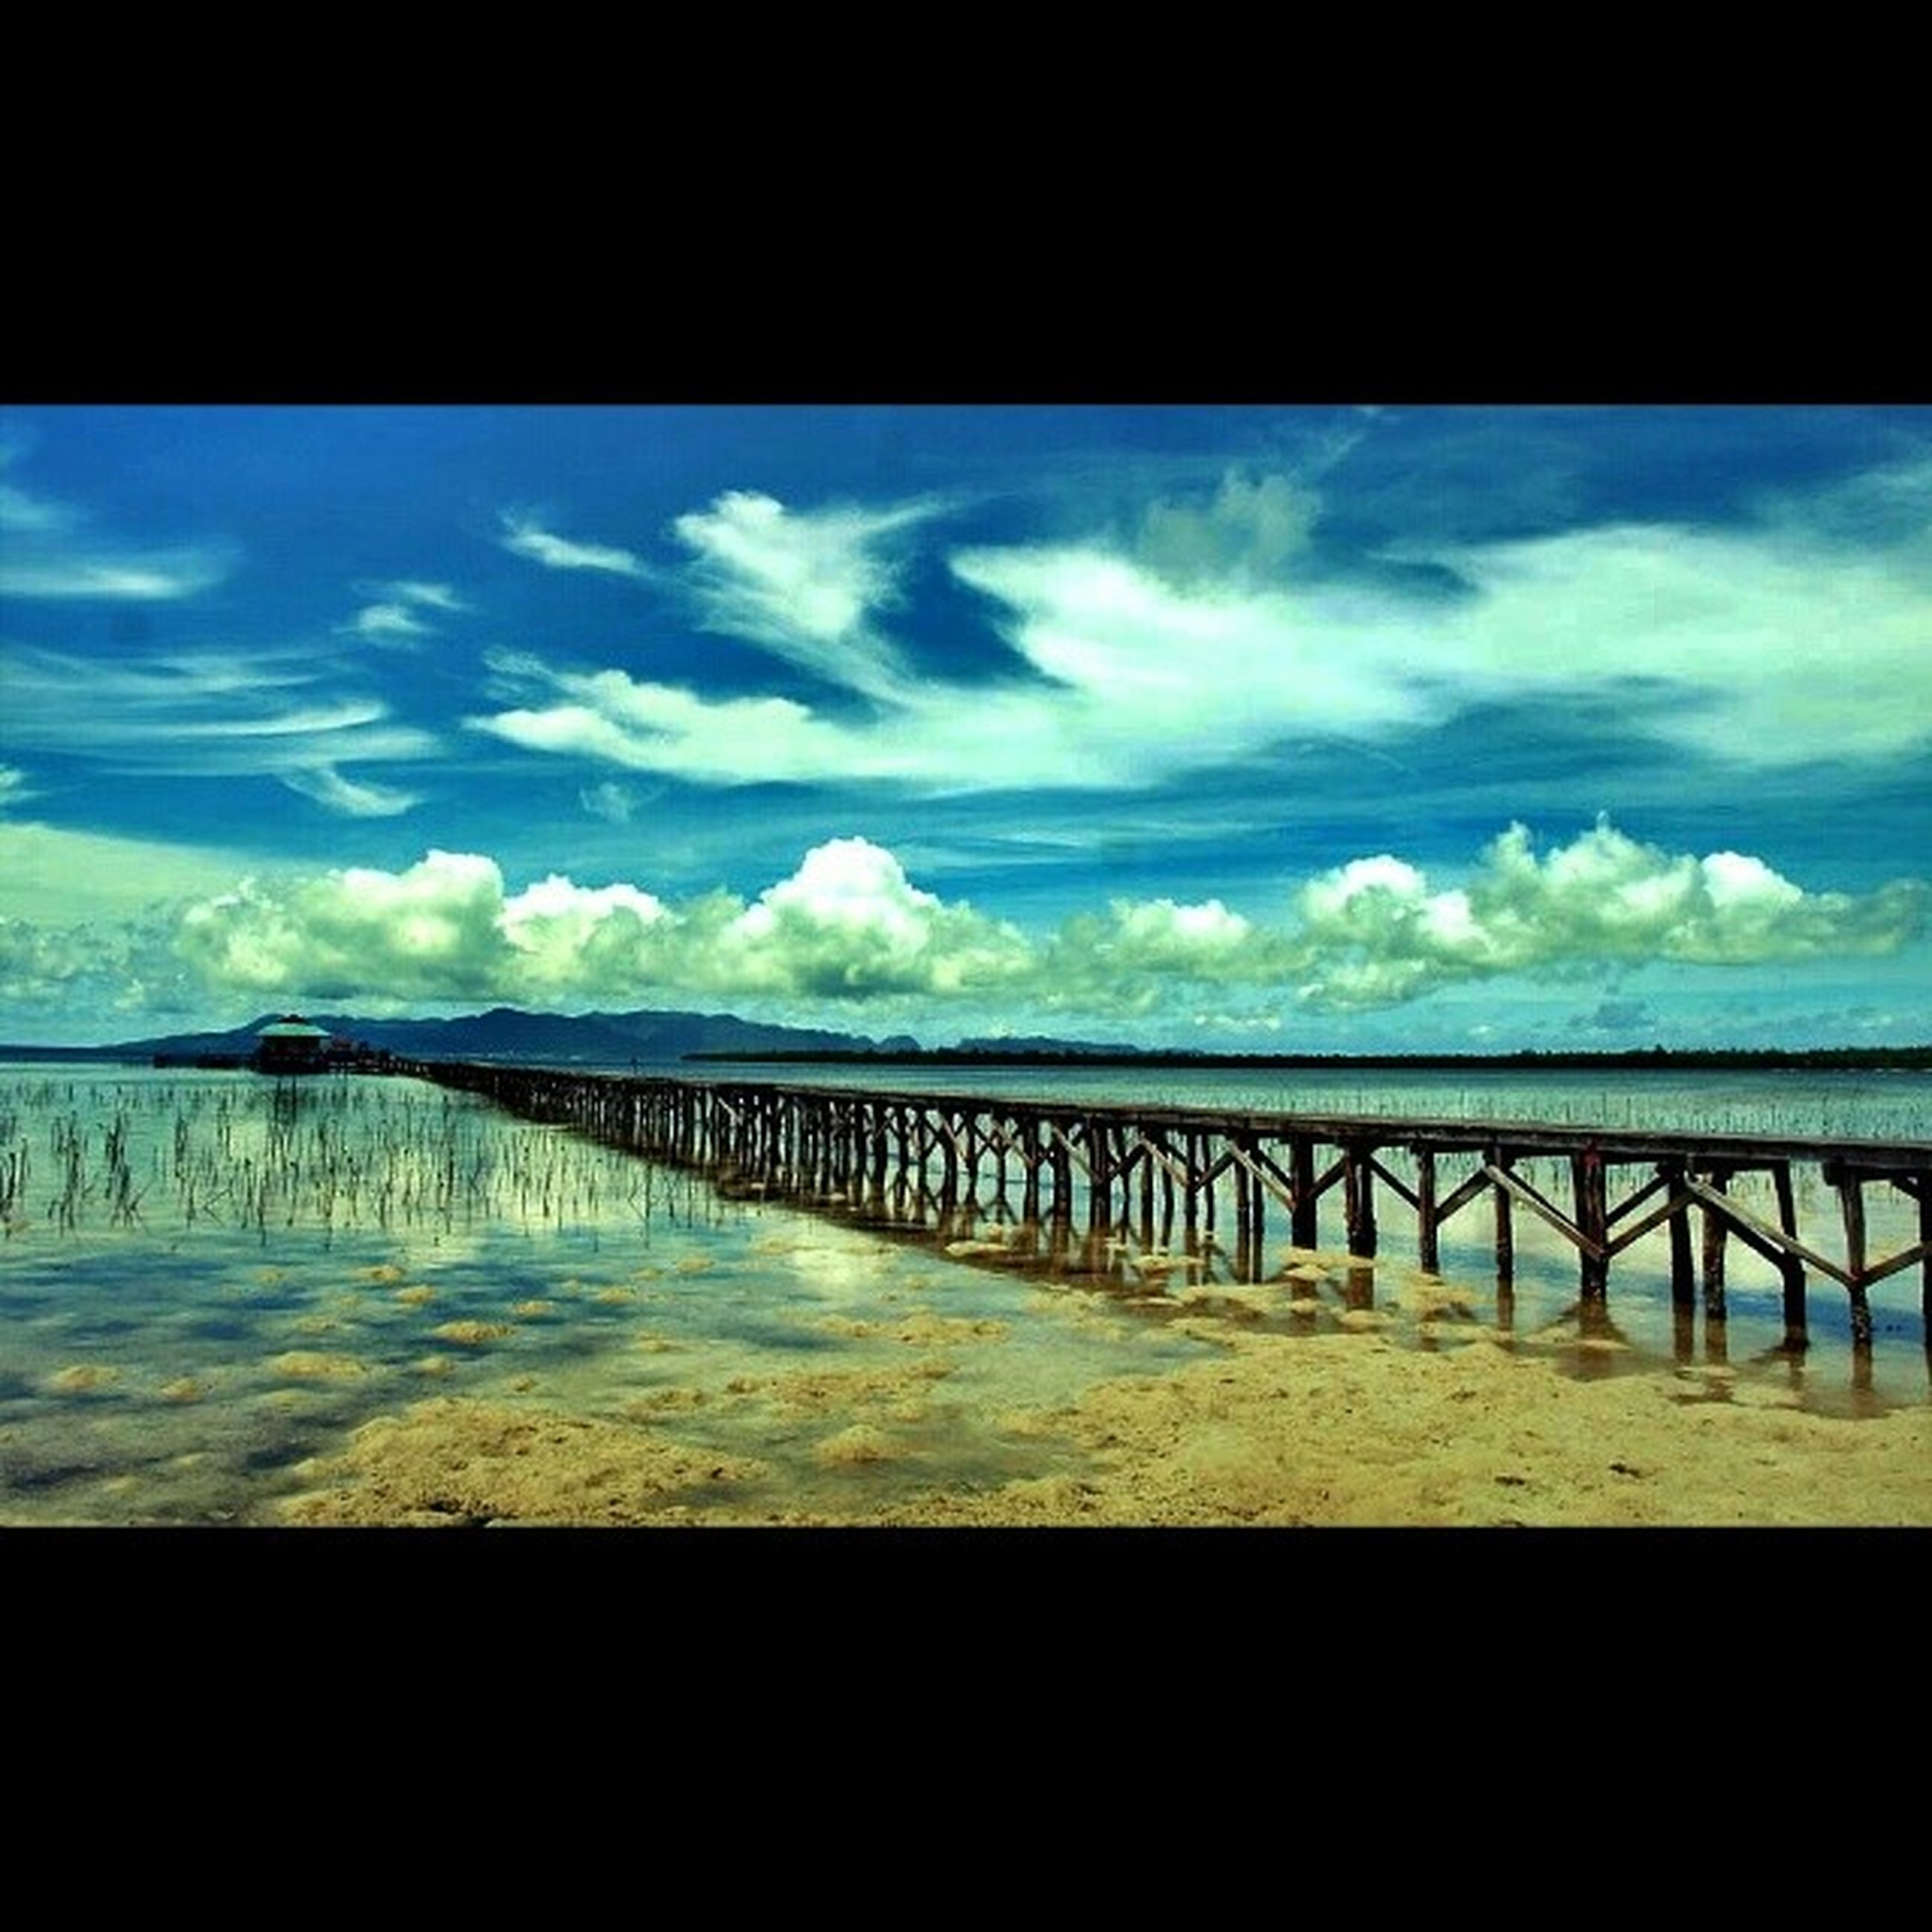 water, sky, sea, cloud - sky, scenics, tranquil scene, tranquility, cloud, cloudy, railing, pier, horizon over water, beauty in nature, nature, beach, blue, built structure, idyllic, auto post production filter, calm